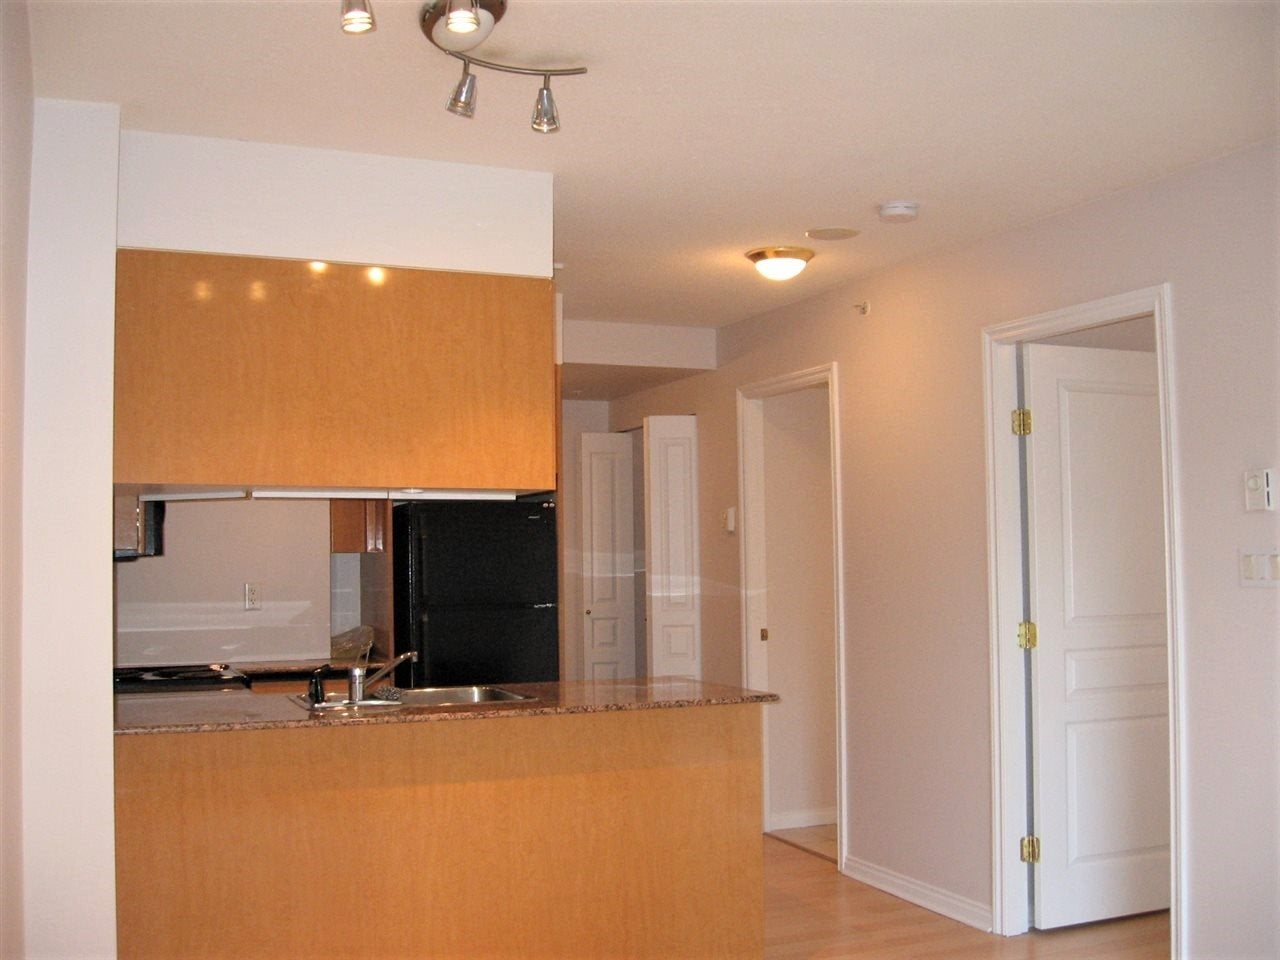 801 1189 HOWE STREET - Downtown VW Apartment/Condo for sale, 1 Bedroom (R2423012) - #5